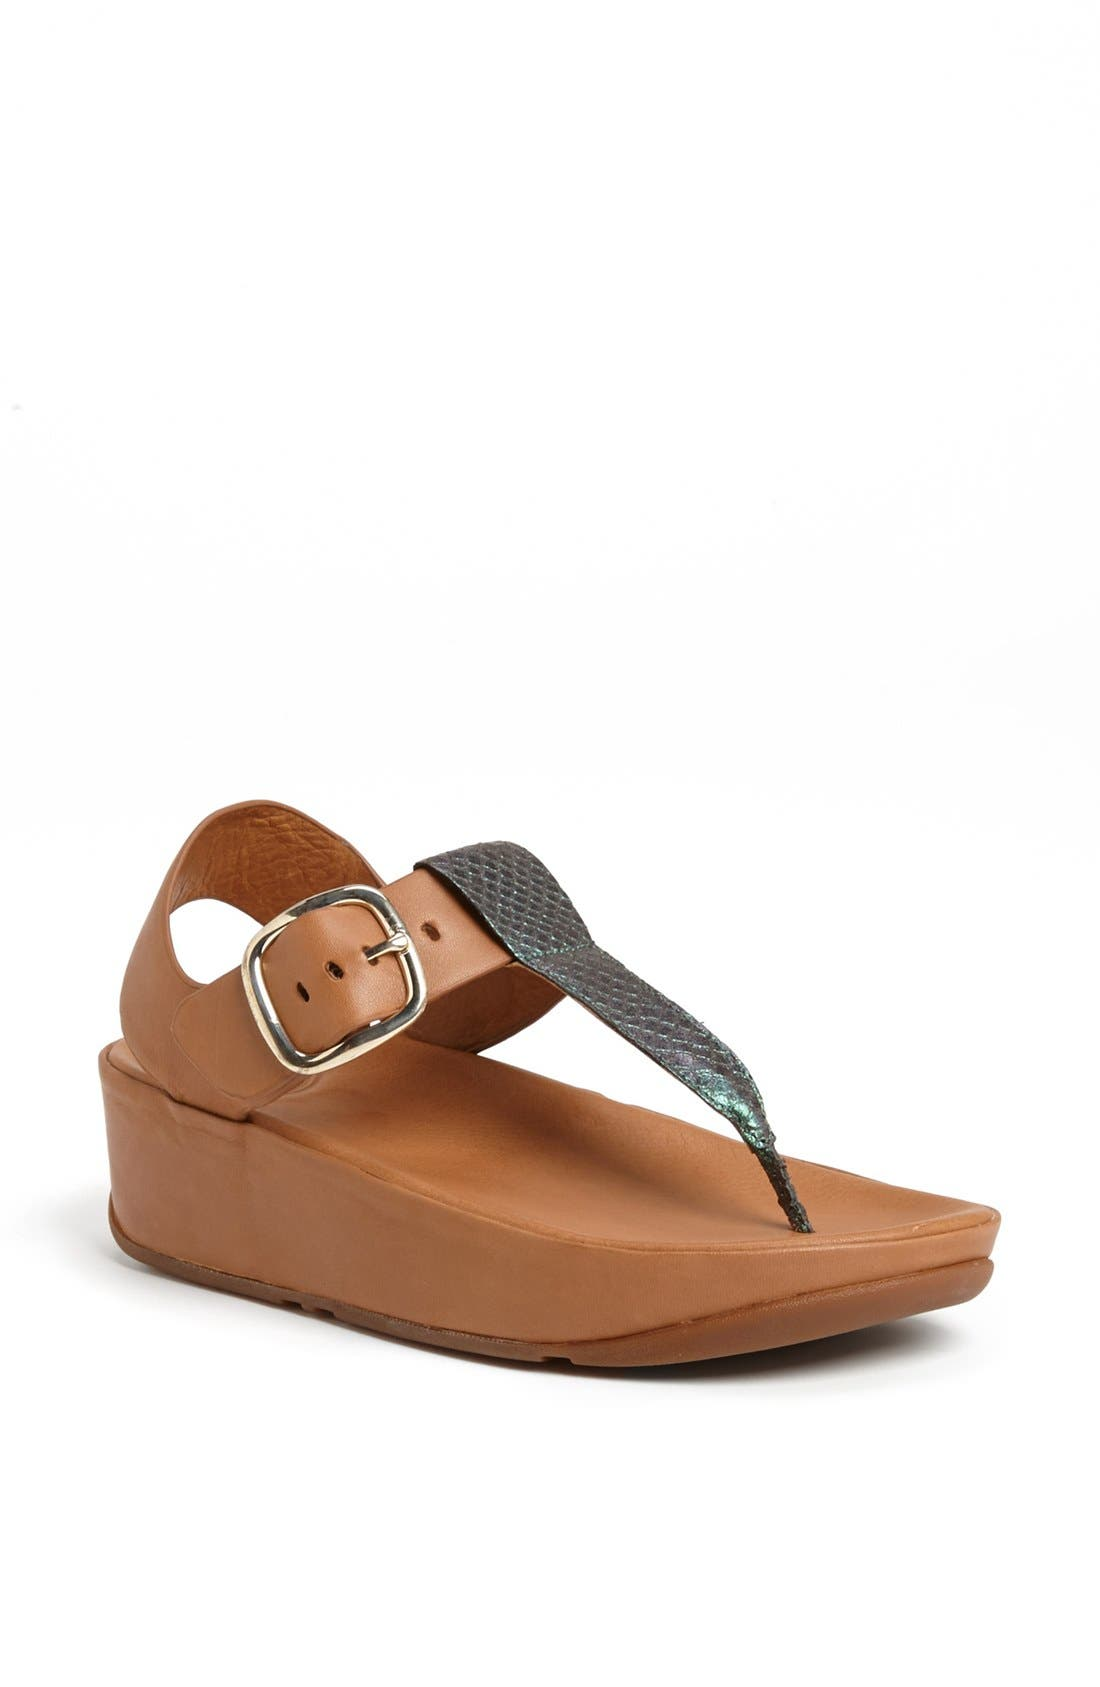 Alternate Image 1 Selected - FitFlop 'Tia™' Leather Sandal